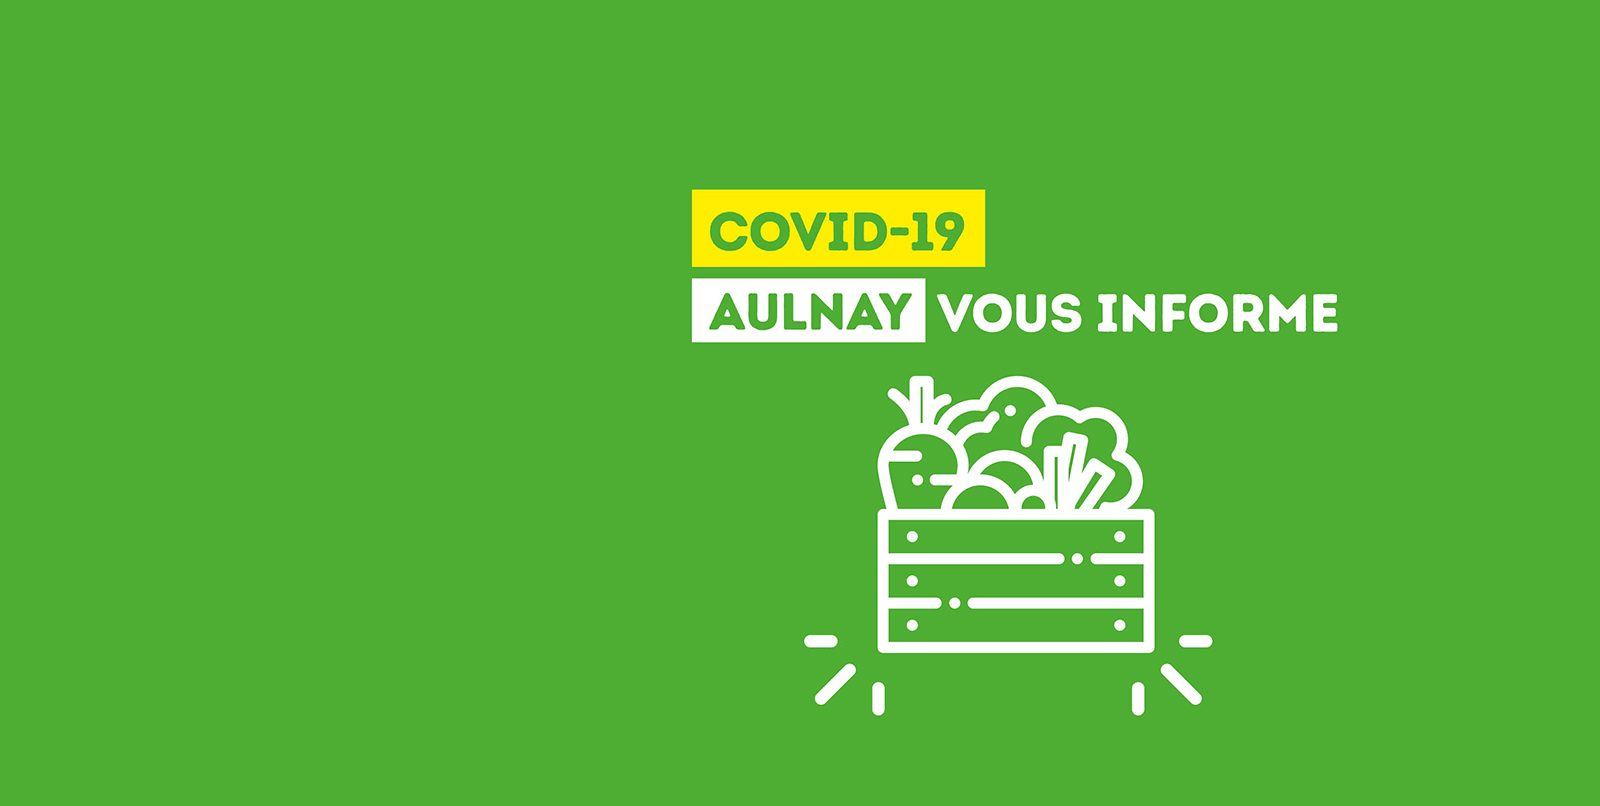 aulnay vous informe